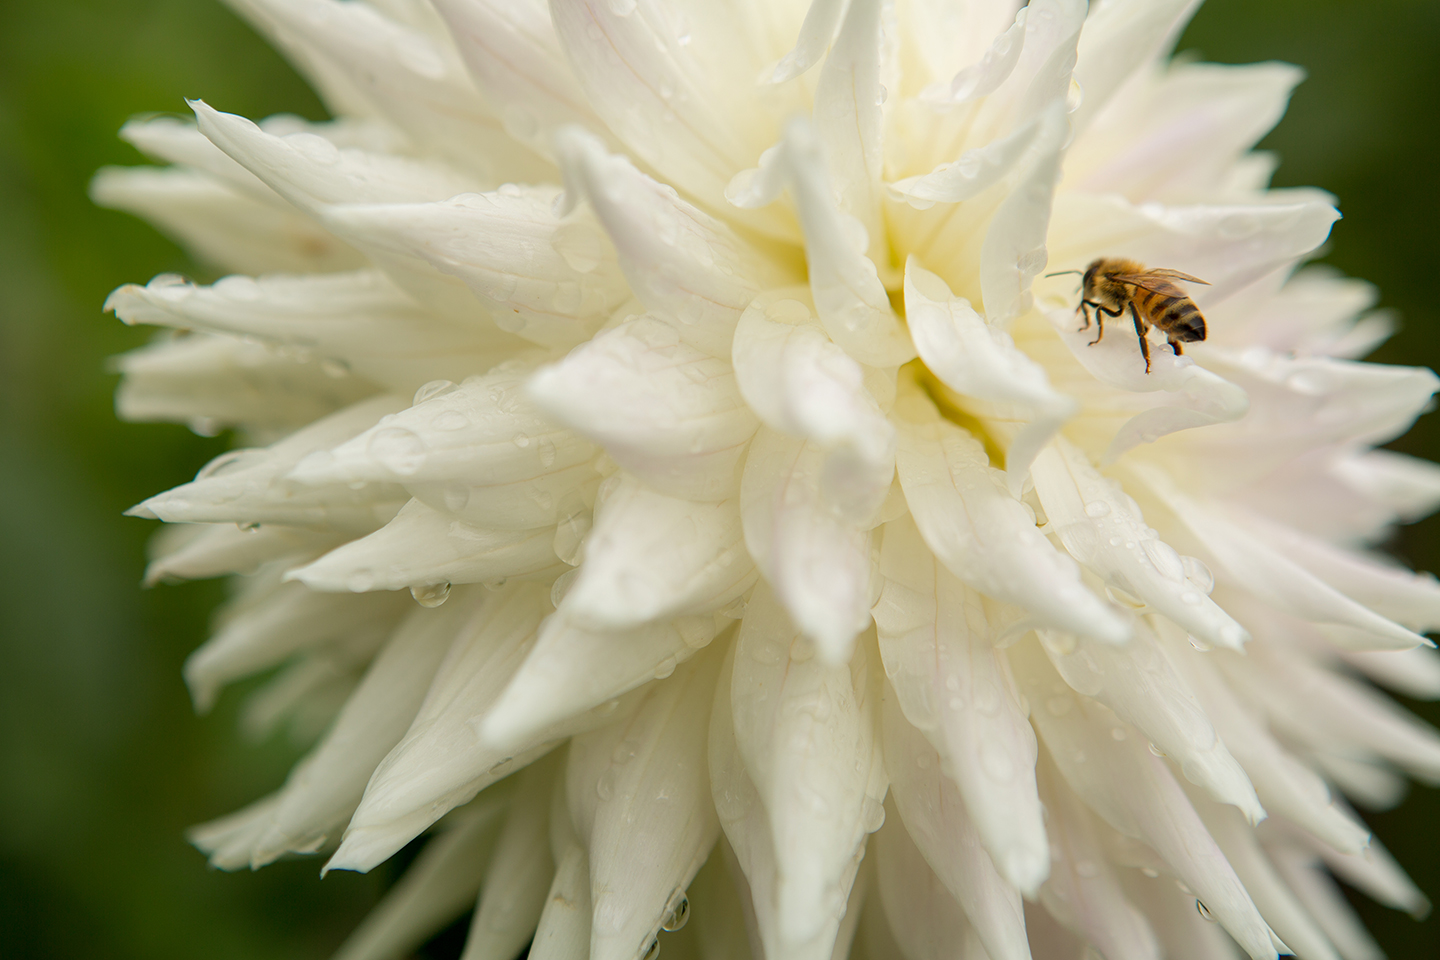 White-Dahlia-with-Insect.jpg